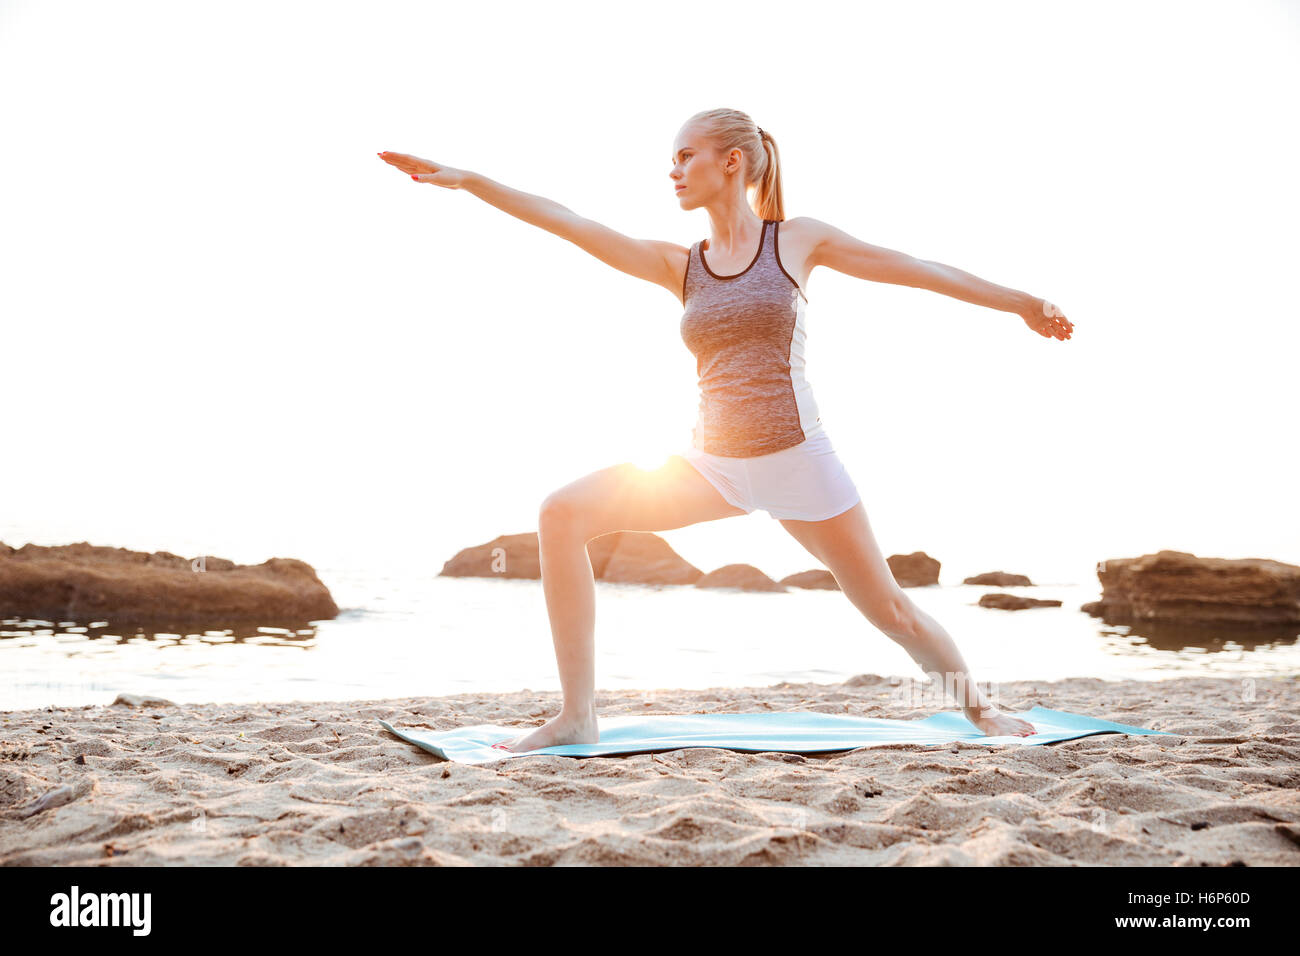 Portrait of a concentrated young woman standing in yoga pose on beach - Stock Image